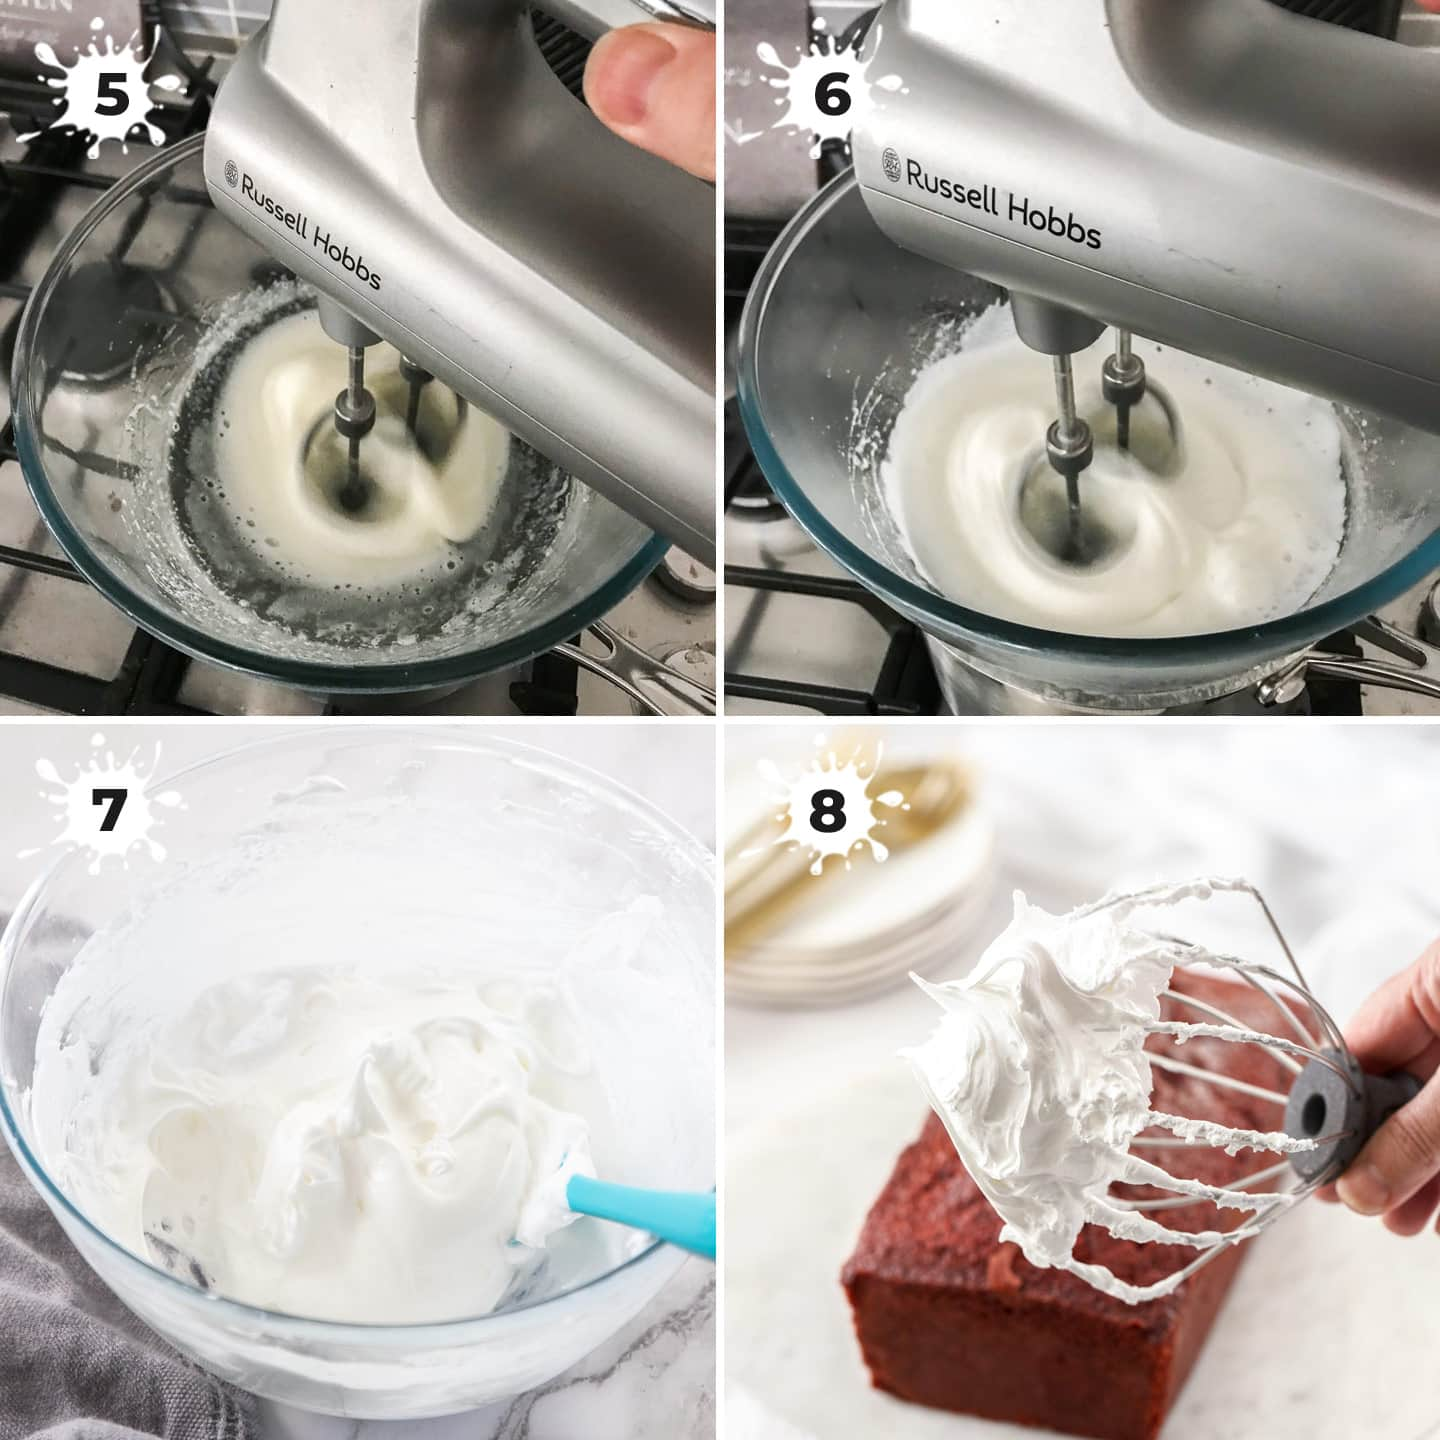 4 images showing how to beating up marshmallow frosting